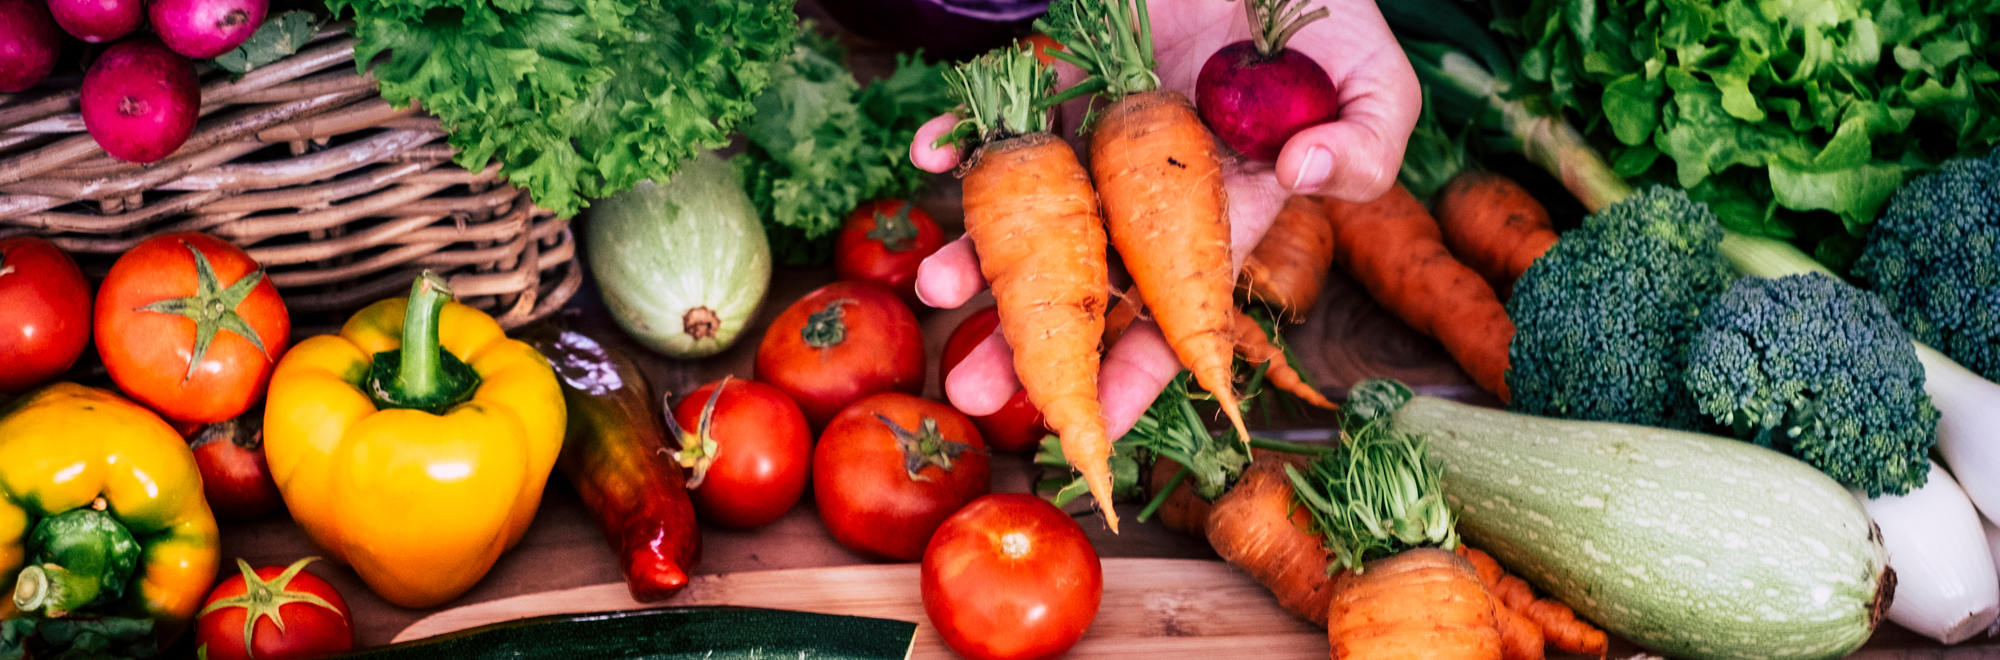 group of vegetables with a hand holding carrots